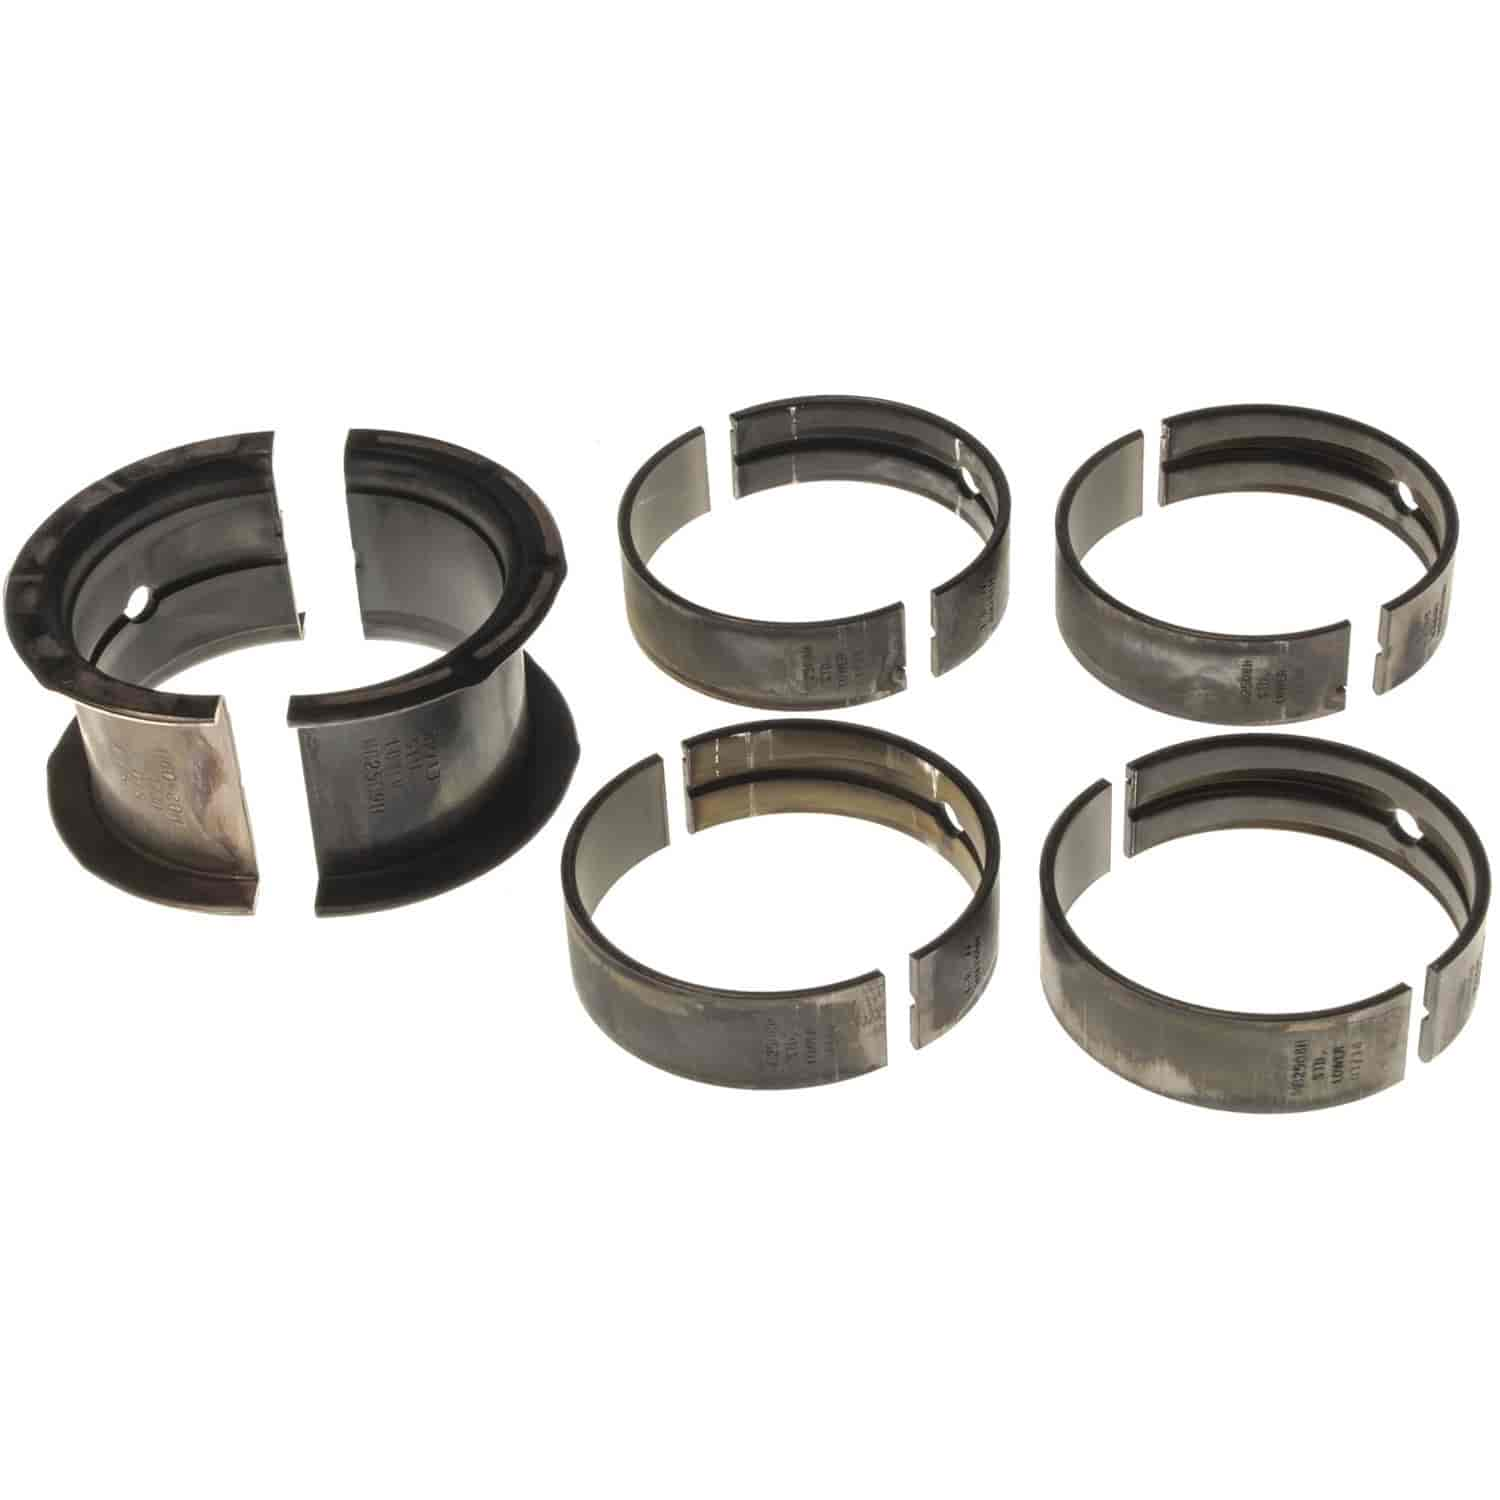 Clevite MS909H20 - Clevite 77 High-Performance Bearings